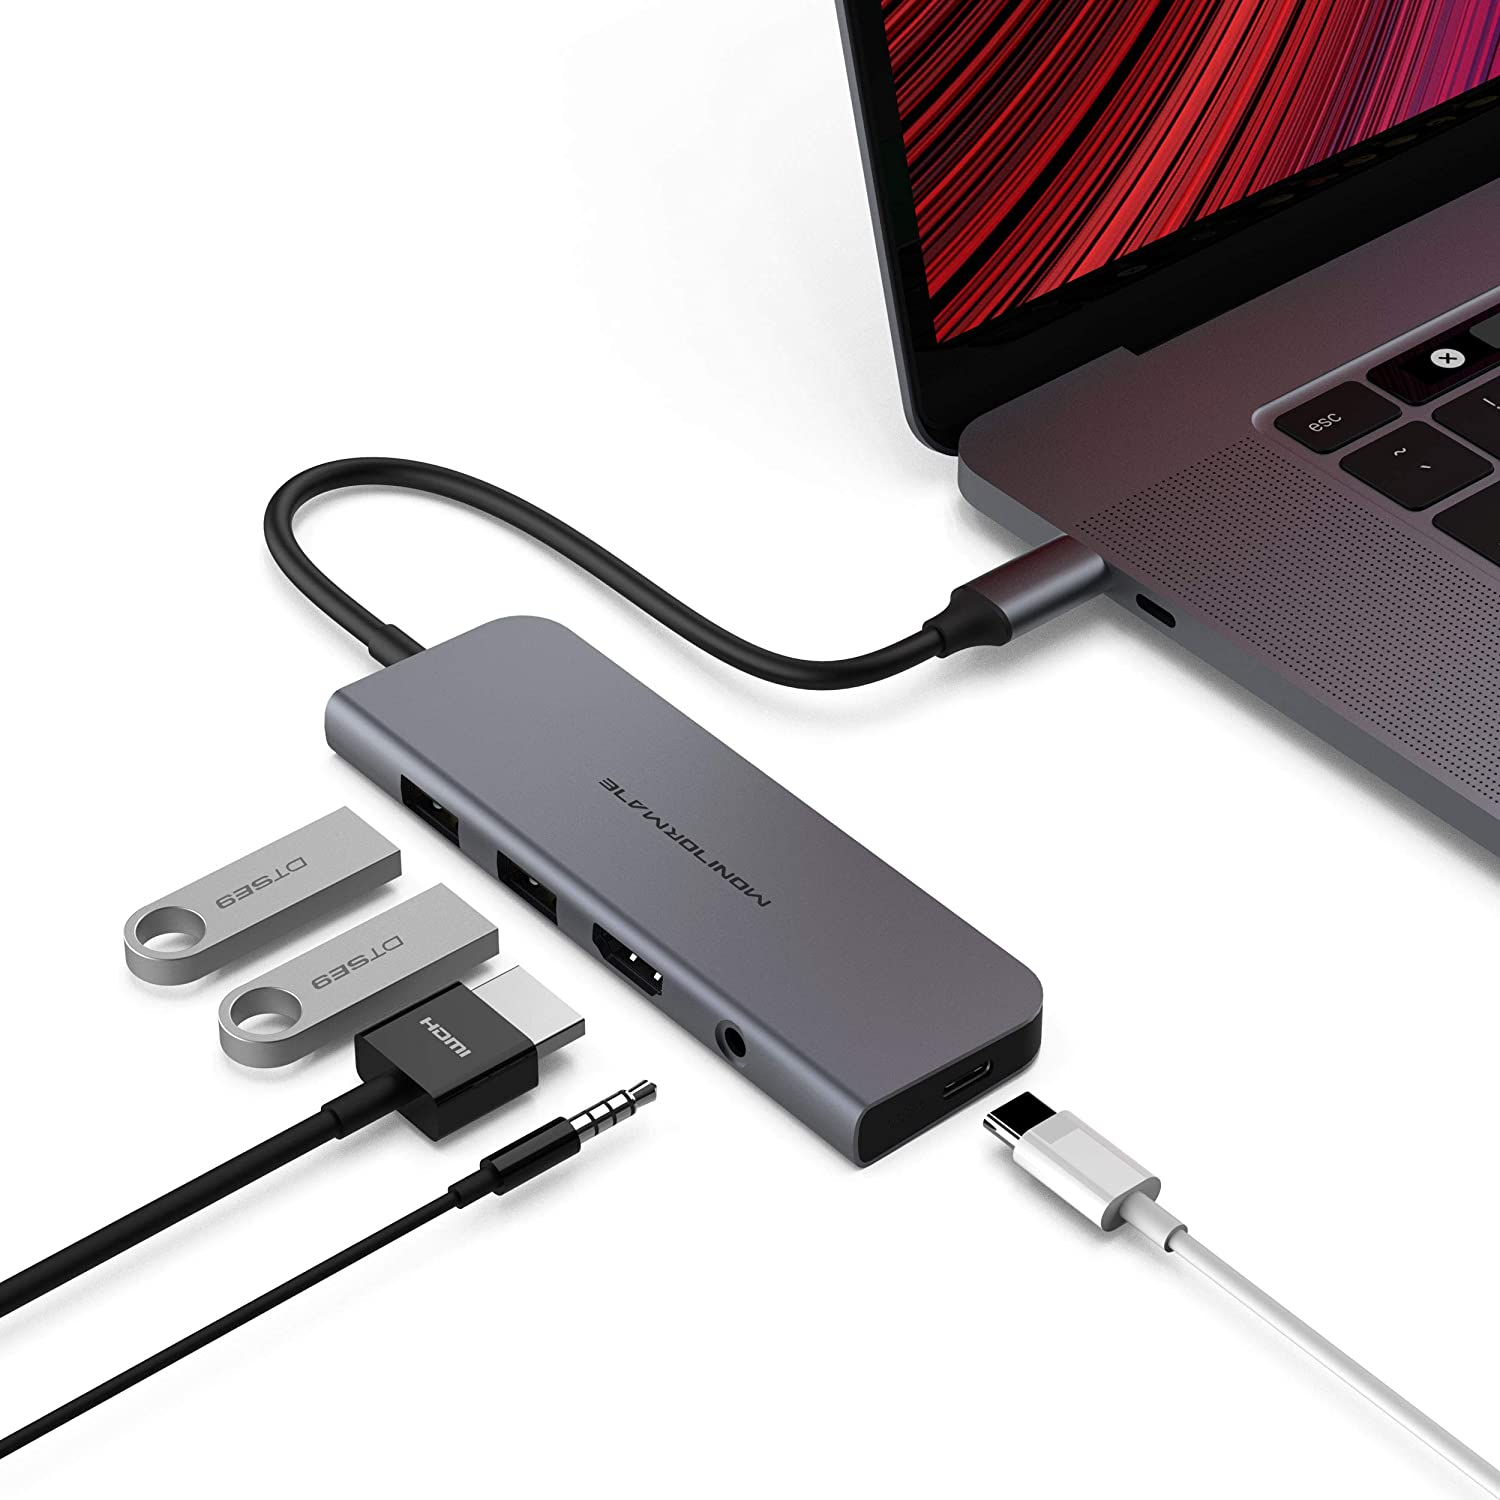 MONITORMATE C51 Gen2 SuperSpeed+ USB-C 10Gbps Adapter | HDMI 4K@60hz | 2 x USB-A Data Gen2 | 100W PD3.0 | 3.5mm Audio Jack(Compatible with MacBook Pro/iPad Pro)